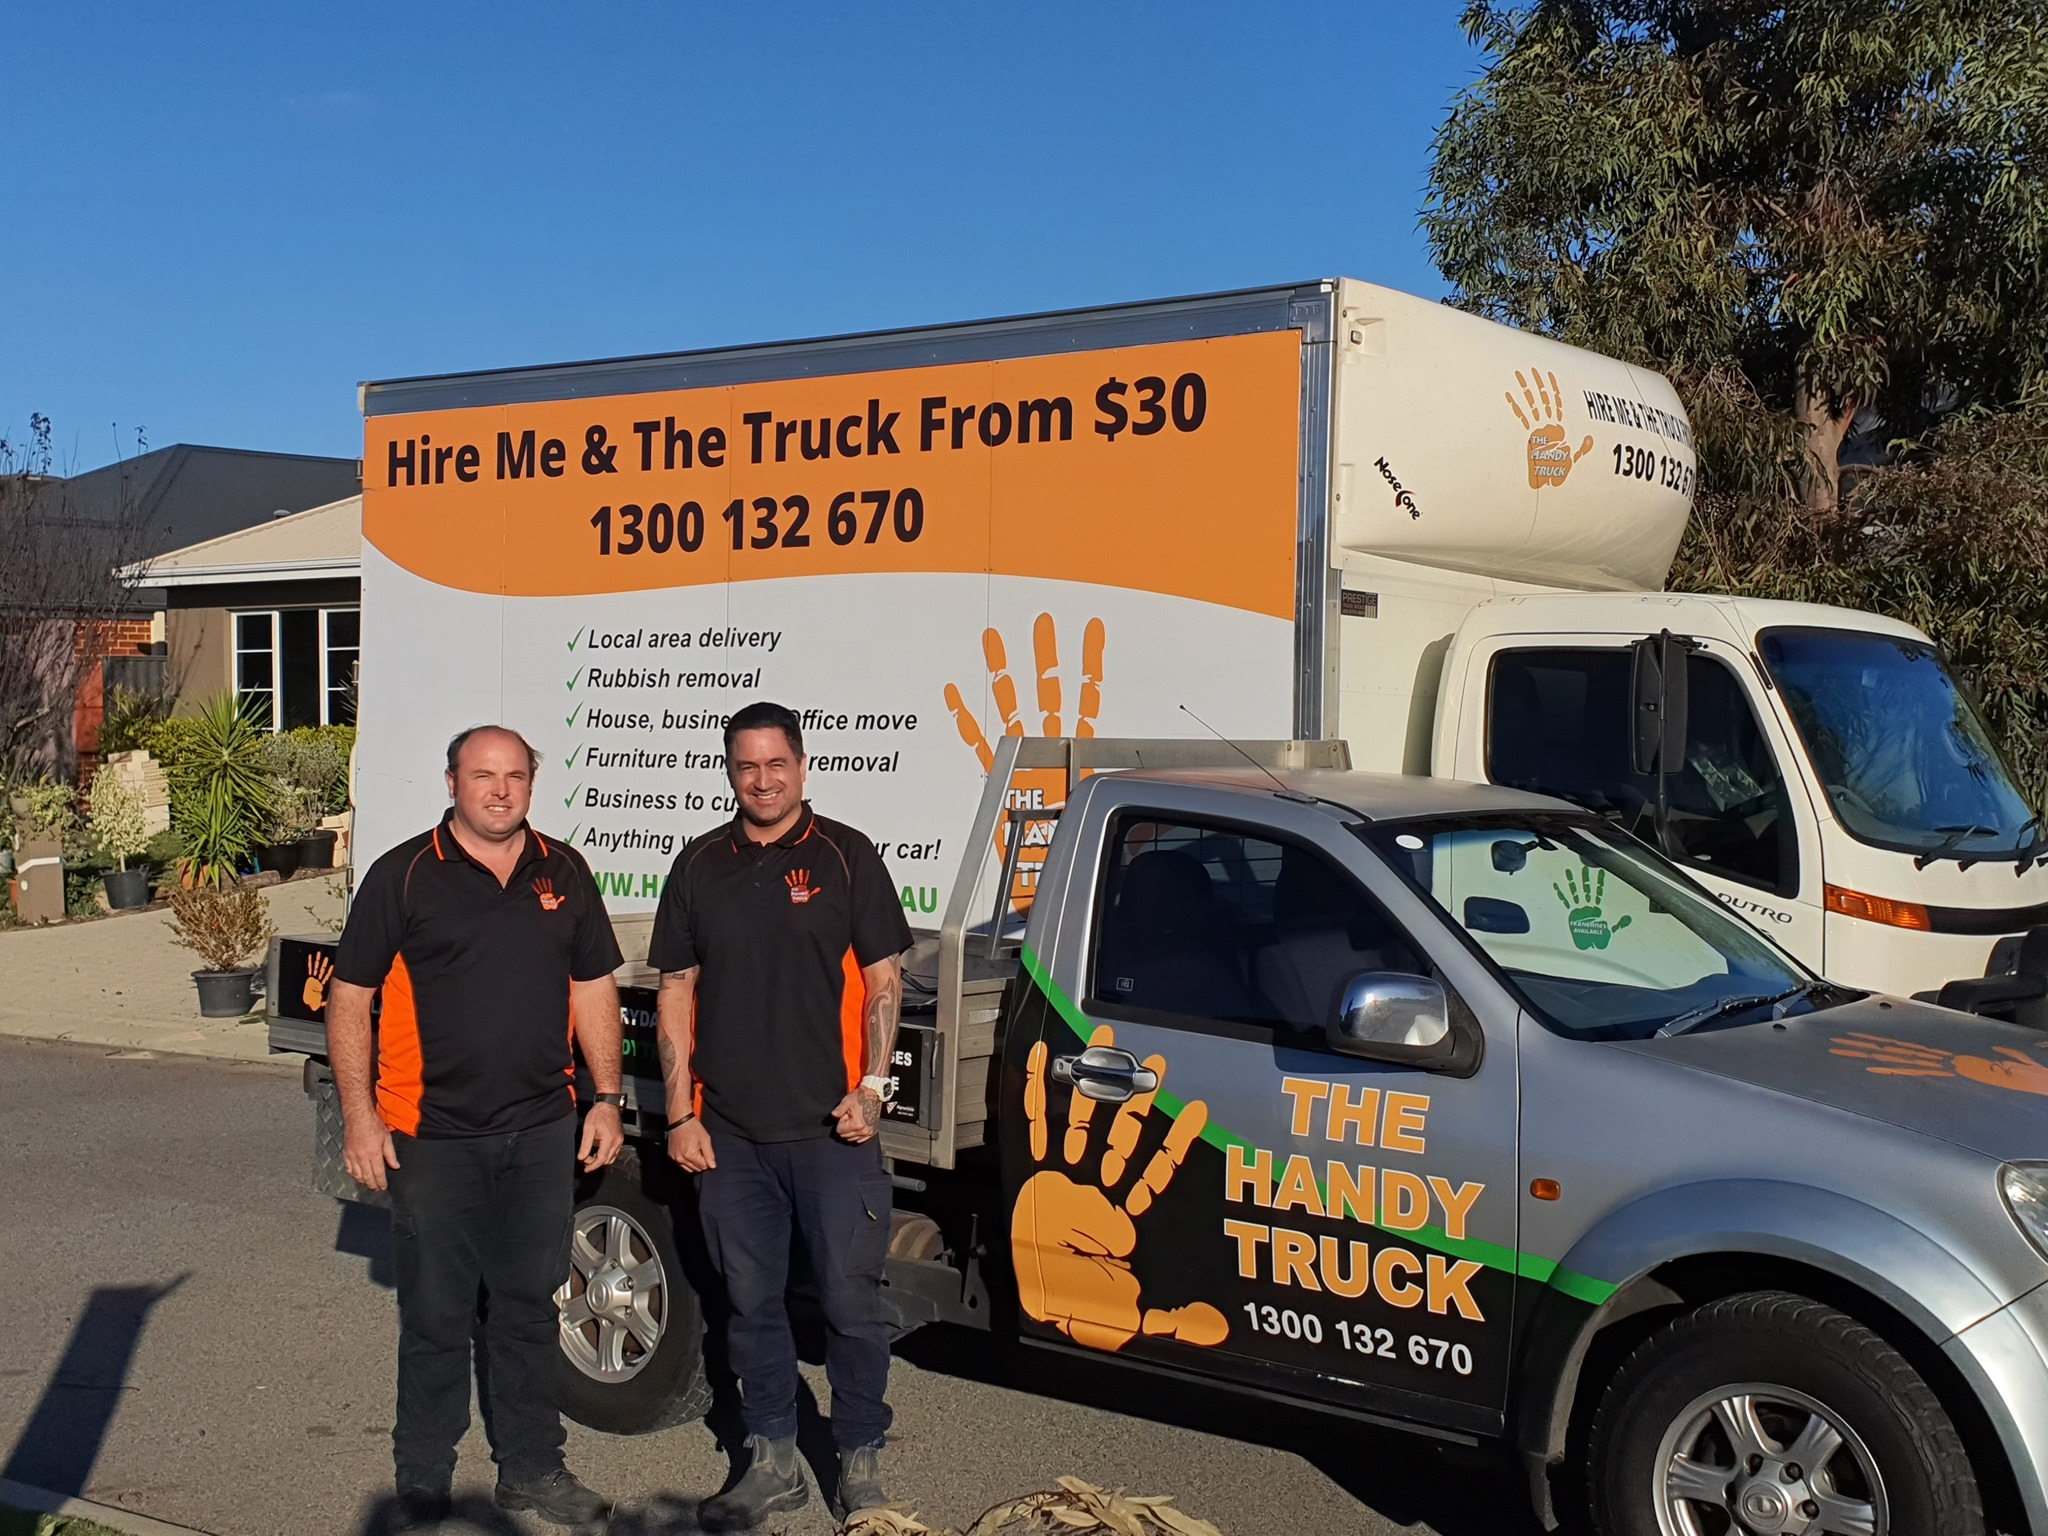 Your delivery and removalist service in Taylors Lakes